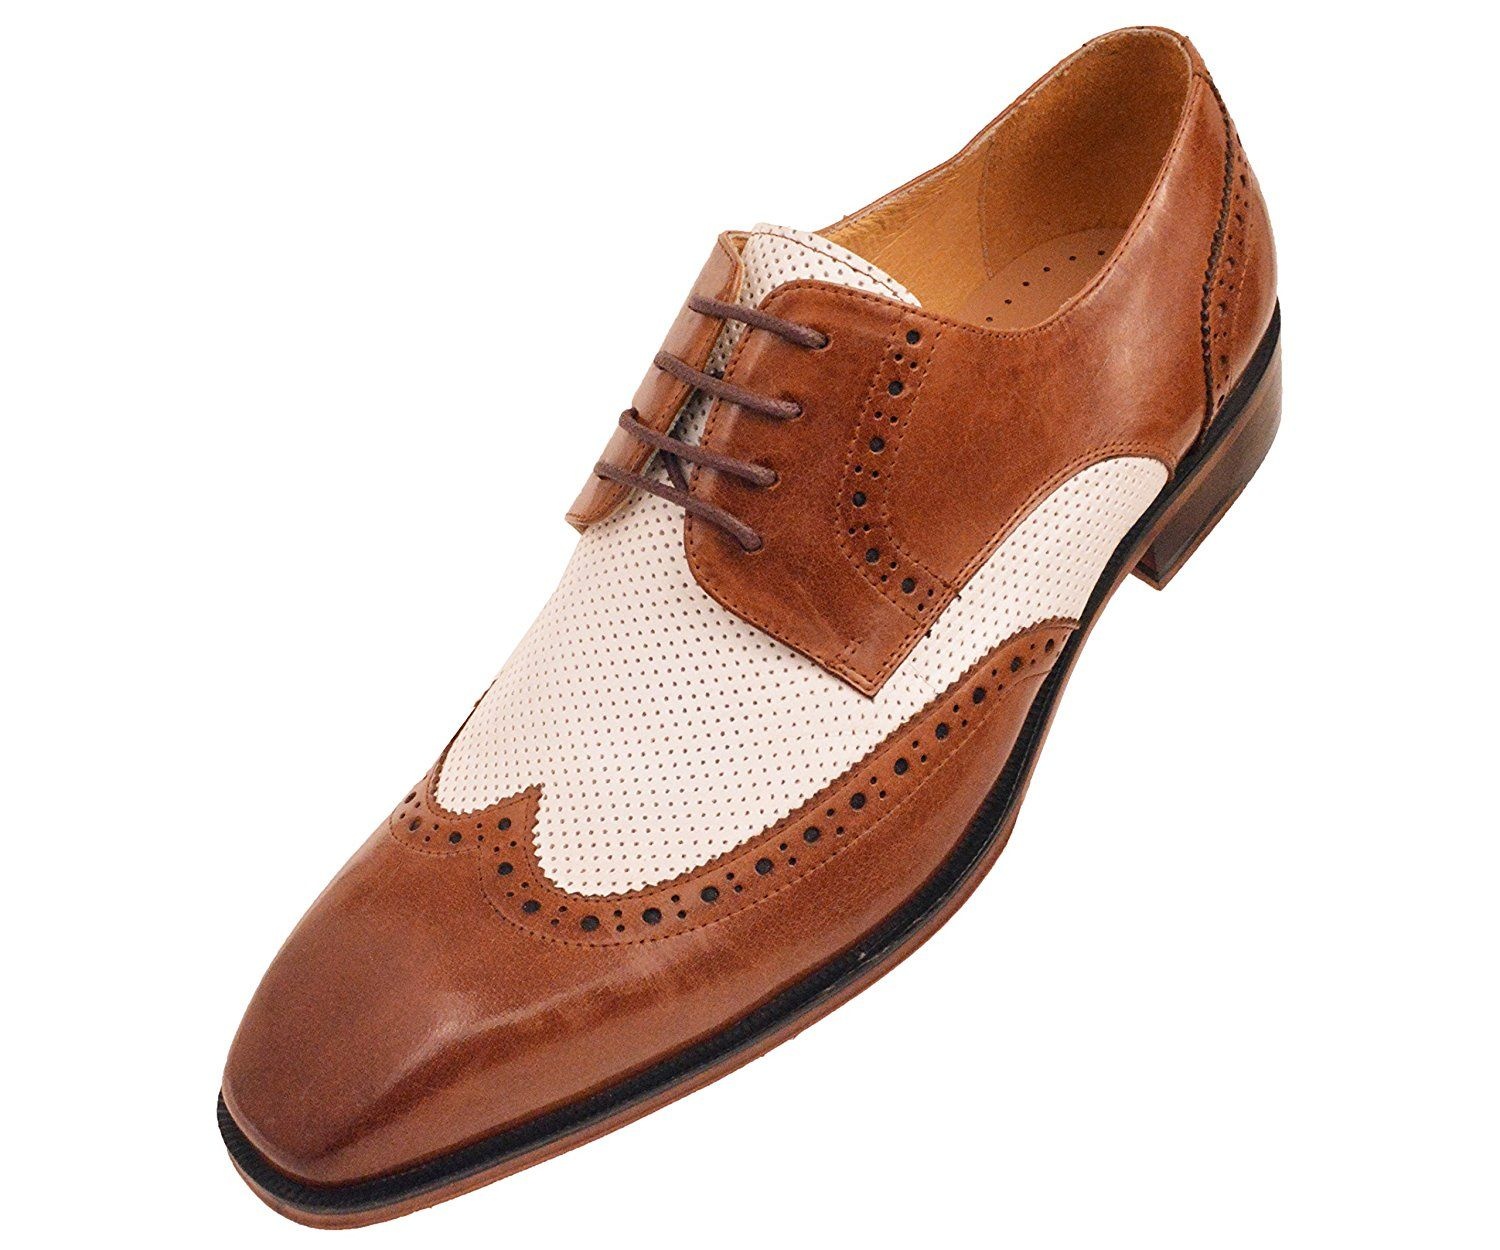 Dress Shoes For Retail Work